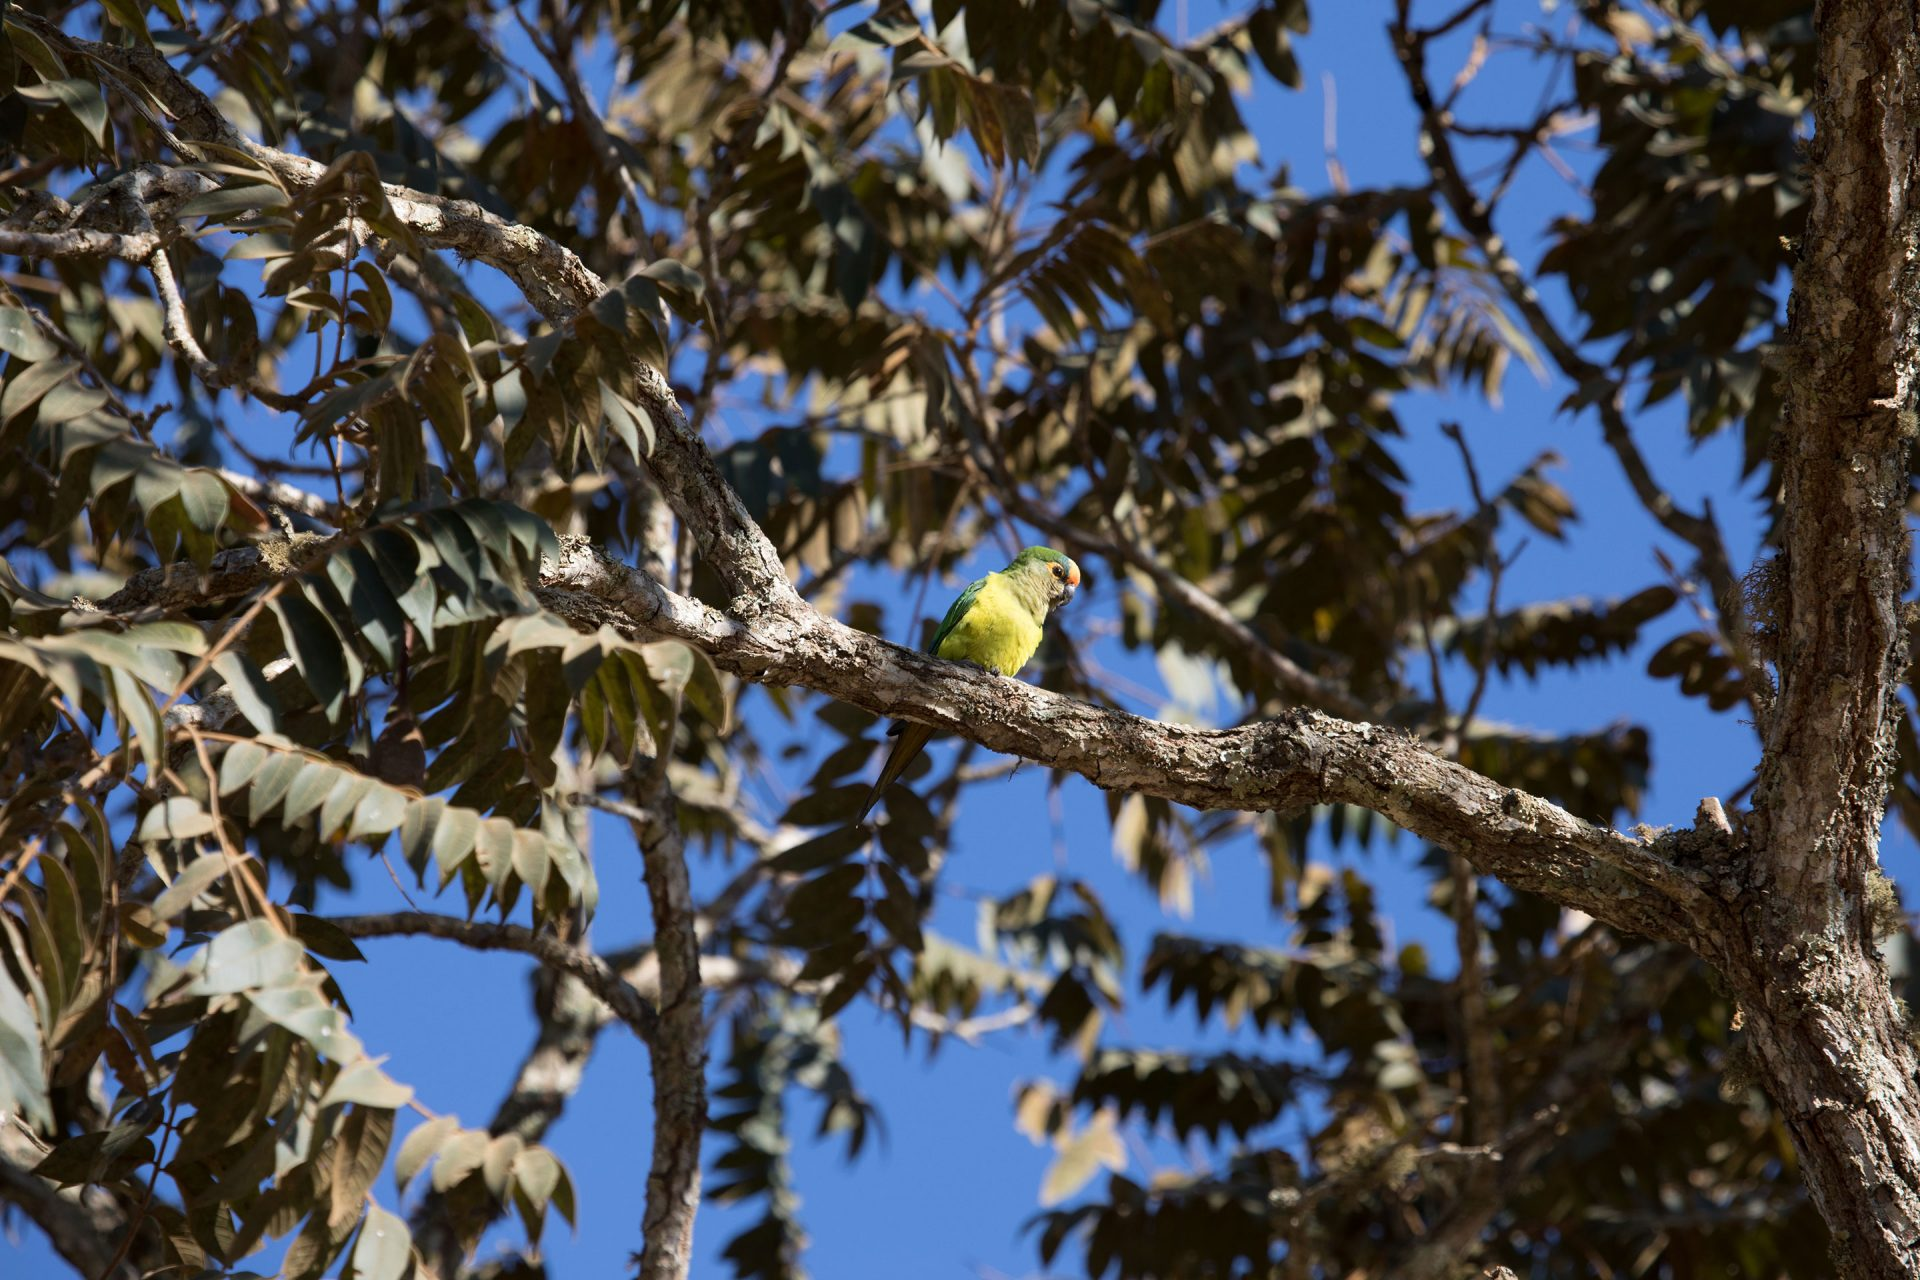 Peach-Fronted Parakeet was common along the roadsides.